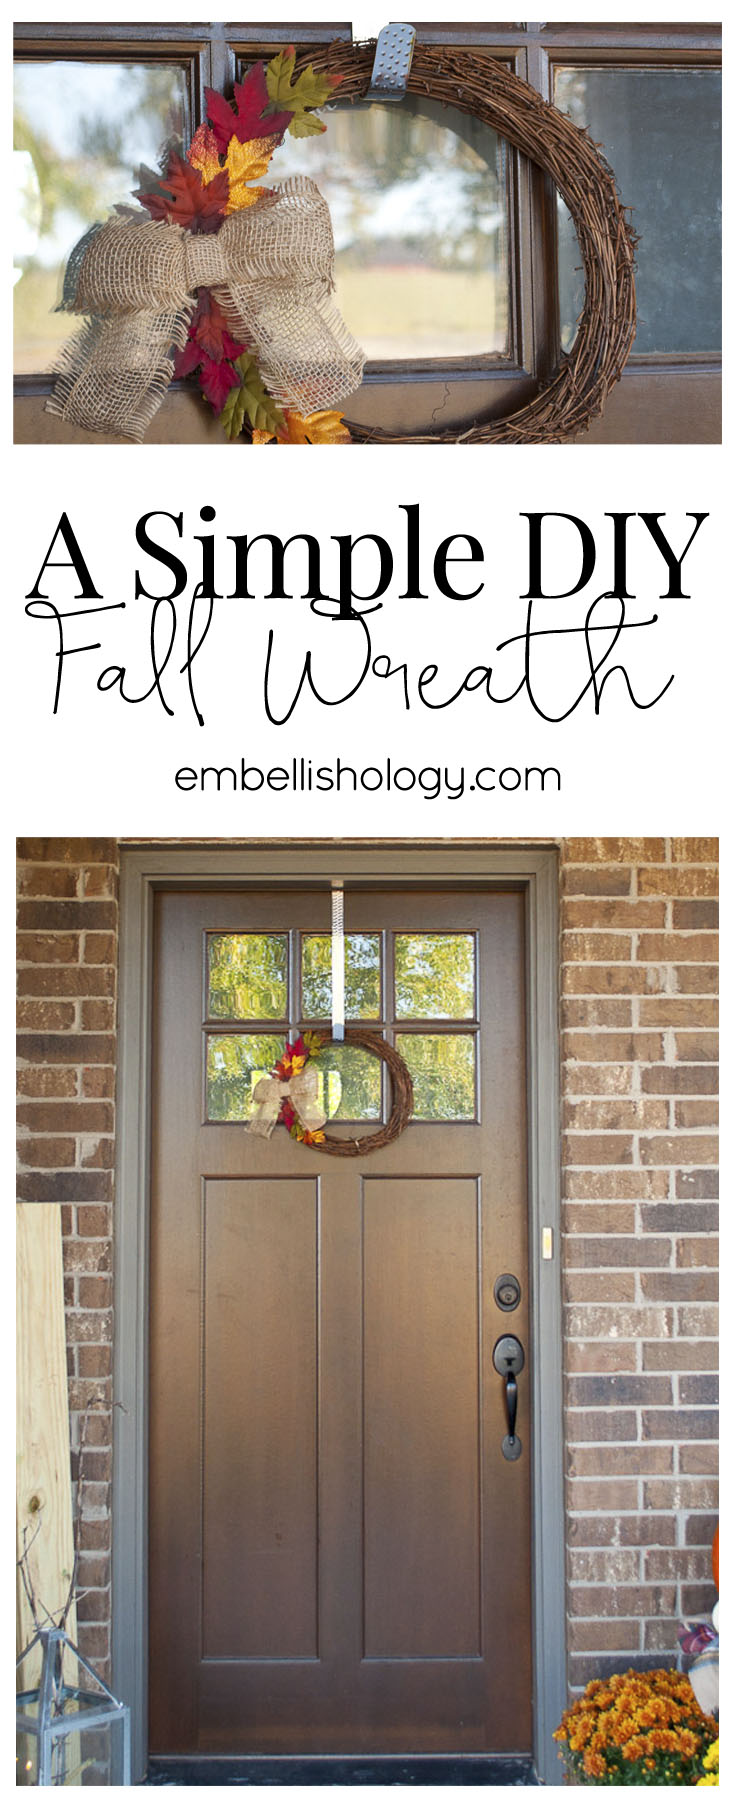 This Fall wreath is simple, cute and very budget friendly.